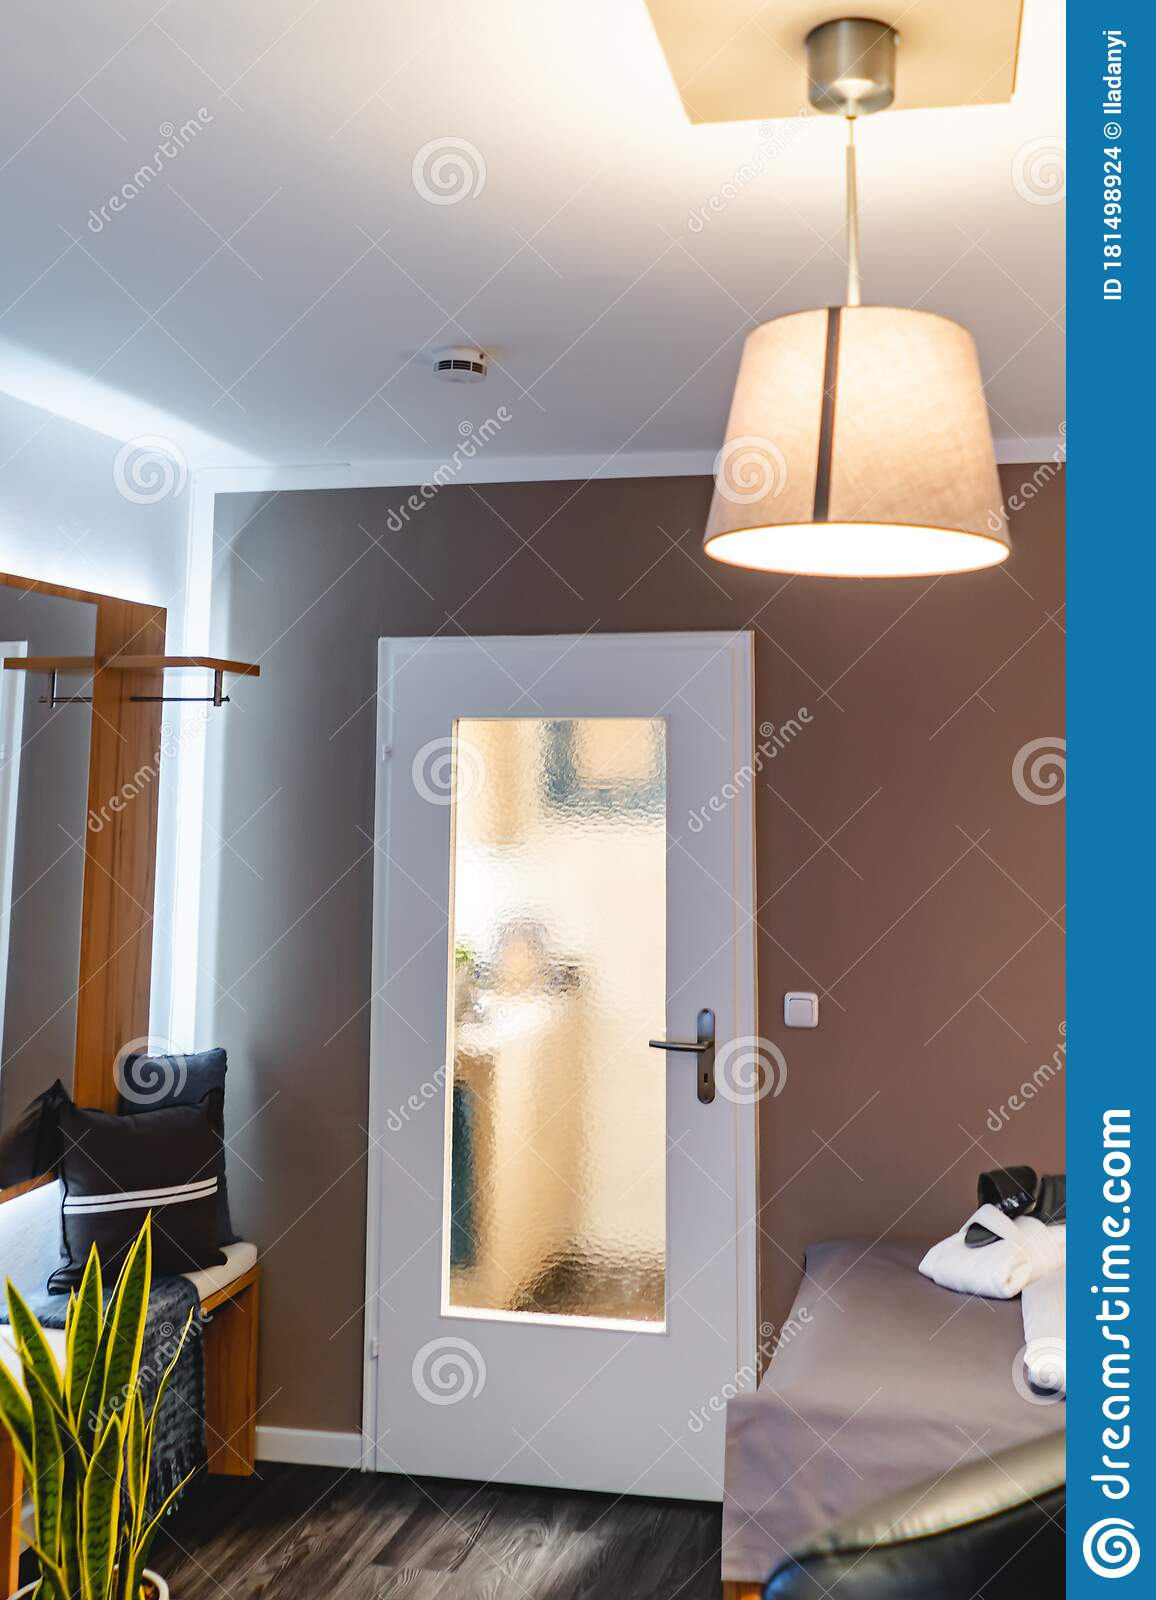 Warm Light Of A Lamp Stock Photo Image Of Floor Decorate 181498924